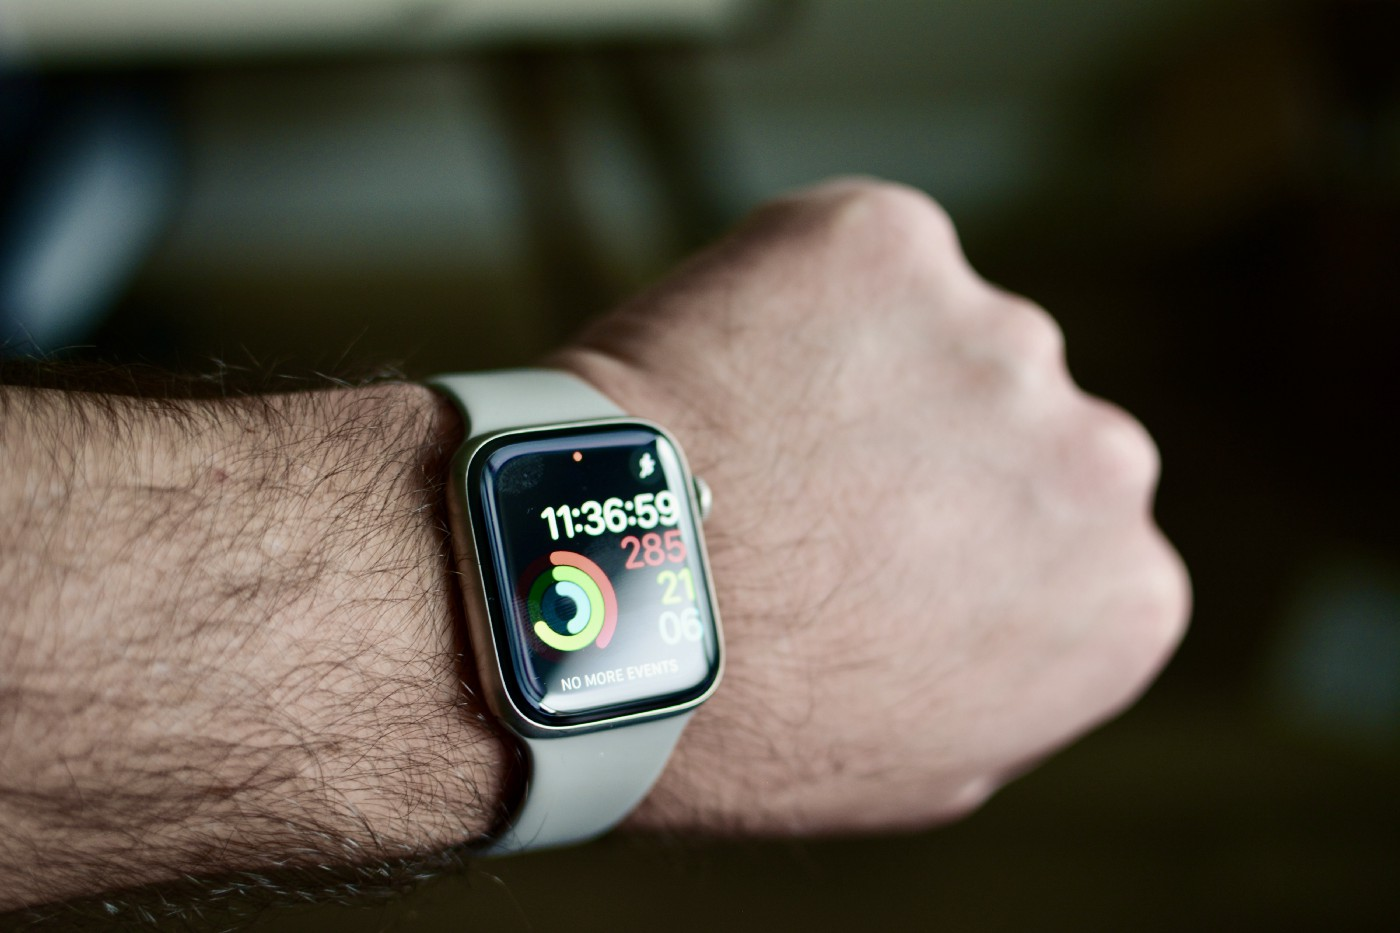 Apple Watch Series 5 on wrist showing the Activty Ring watch face, all rings are not complete.